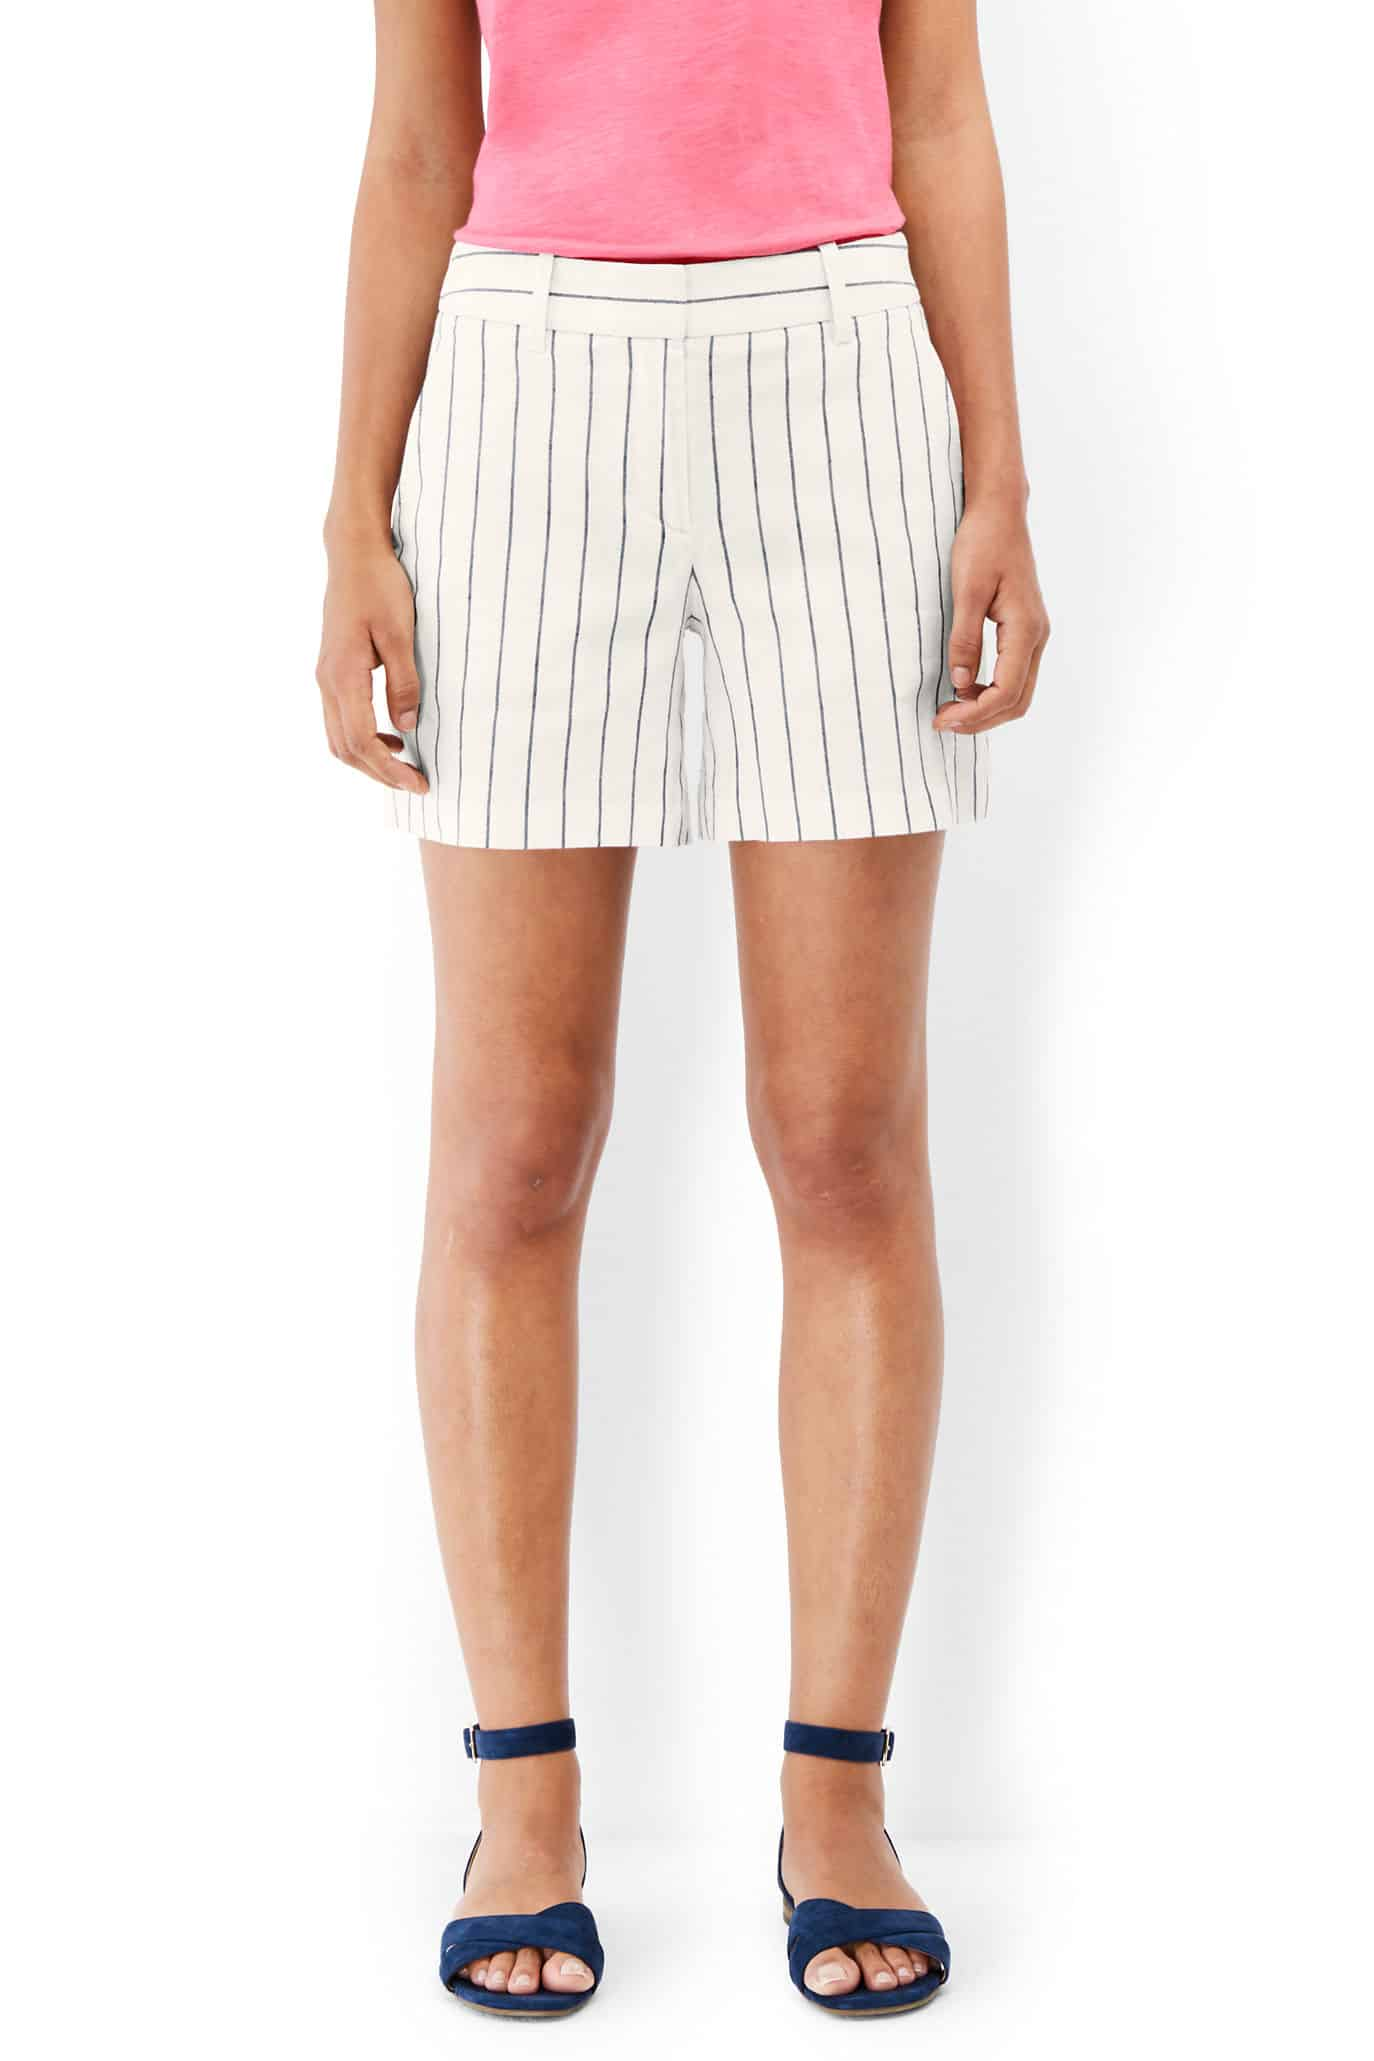 Striped linen shorts, mid-length